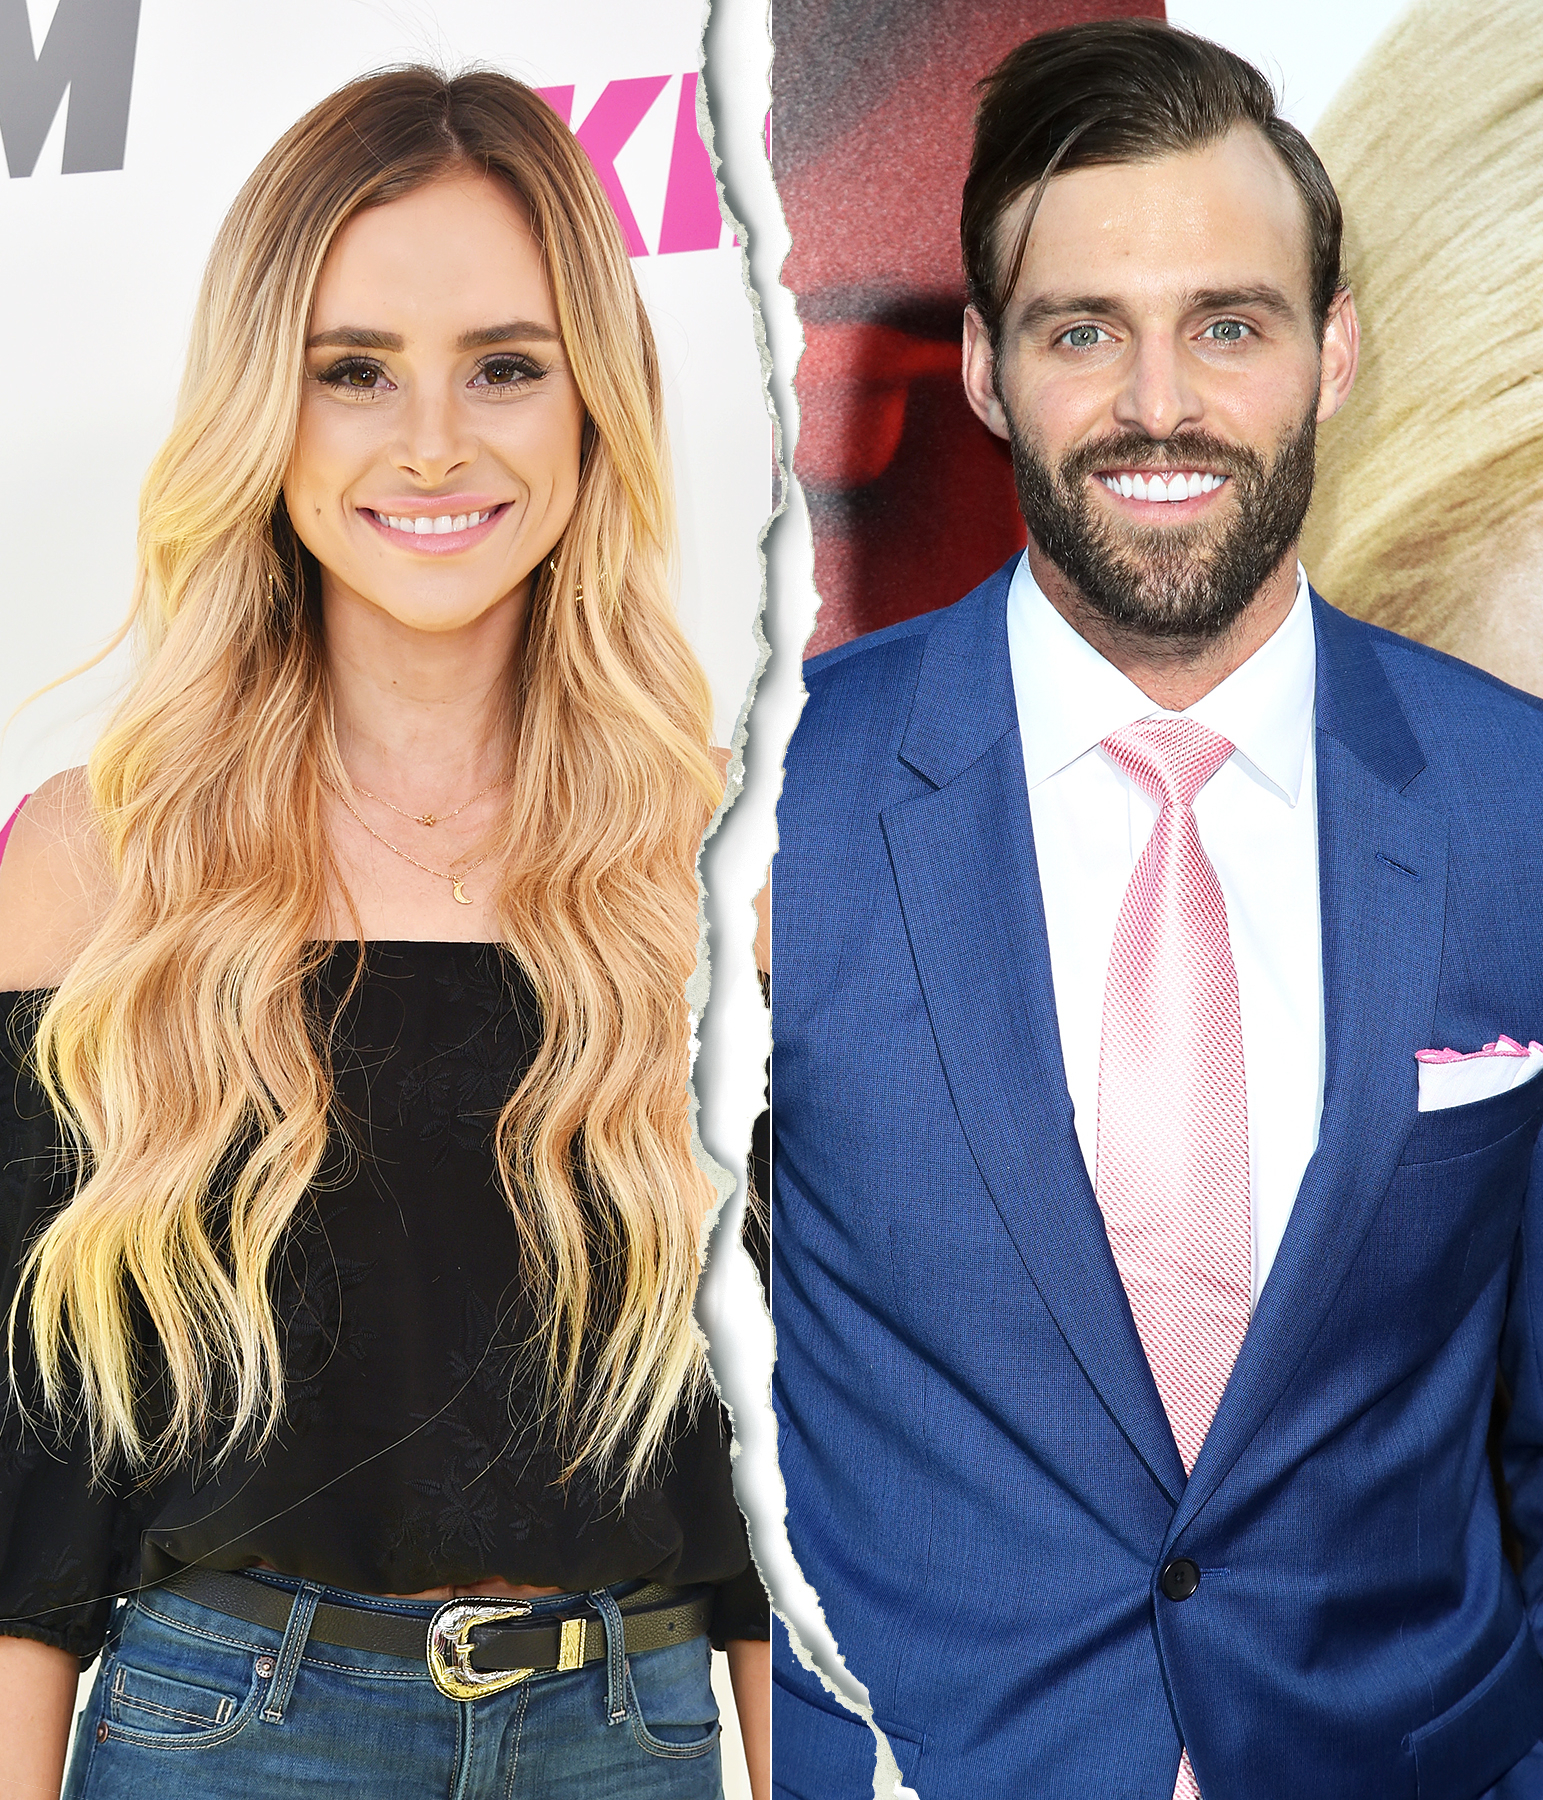 Robby and amanda bachelor in paradise